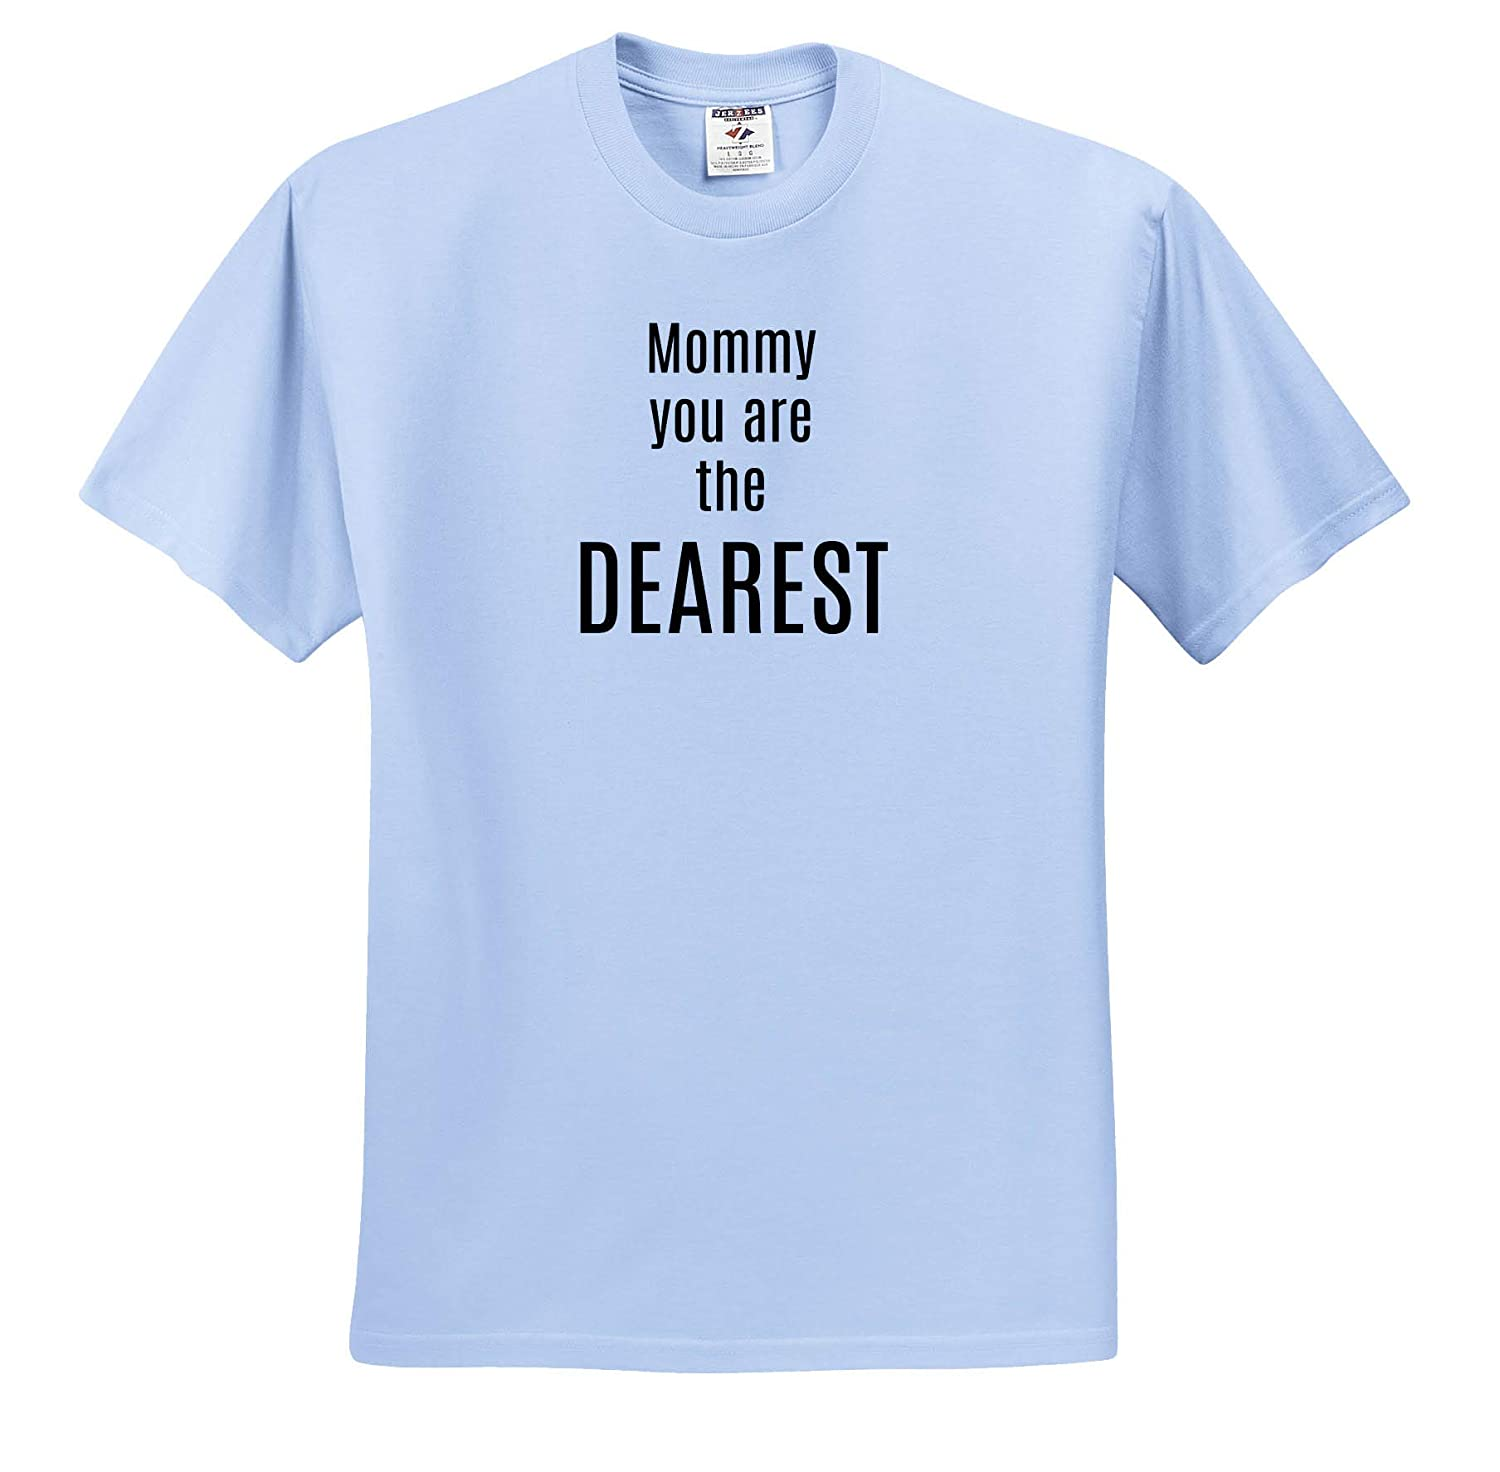 3dRose Carrie Merchant Quote T-Shirts Image of Mommy You are The Dearest